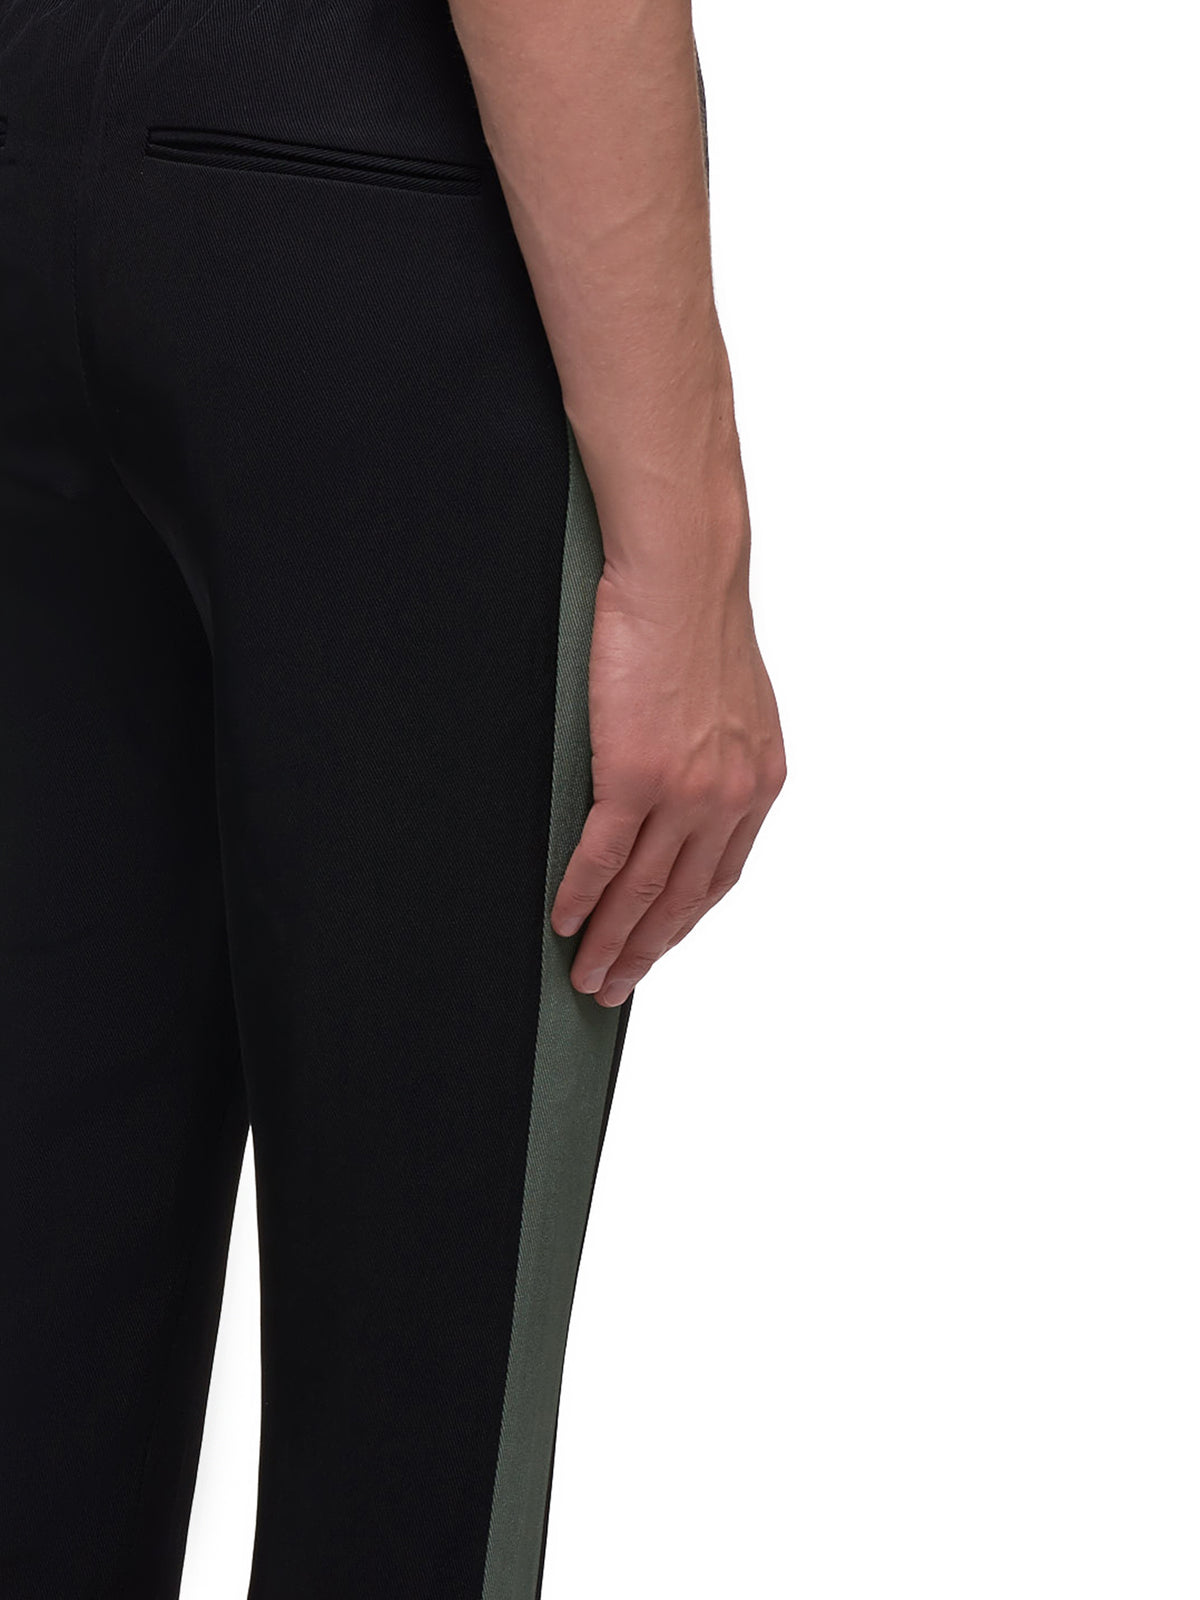 Sean Suen Trousers | H.Lorenzo Detail 2